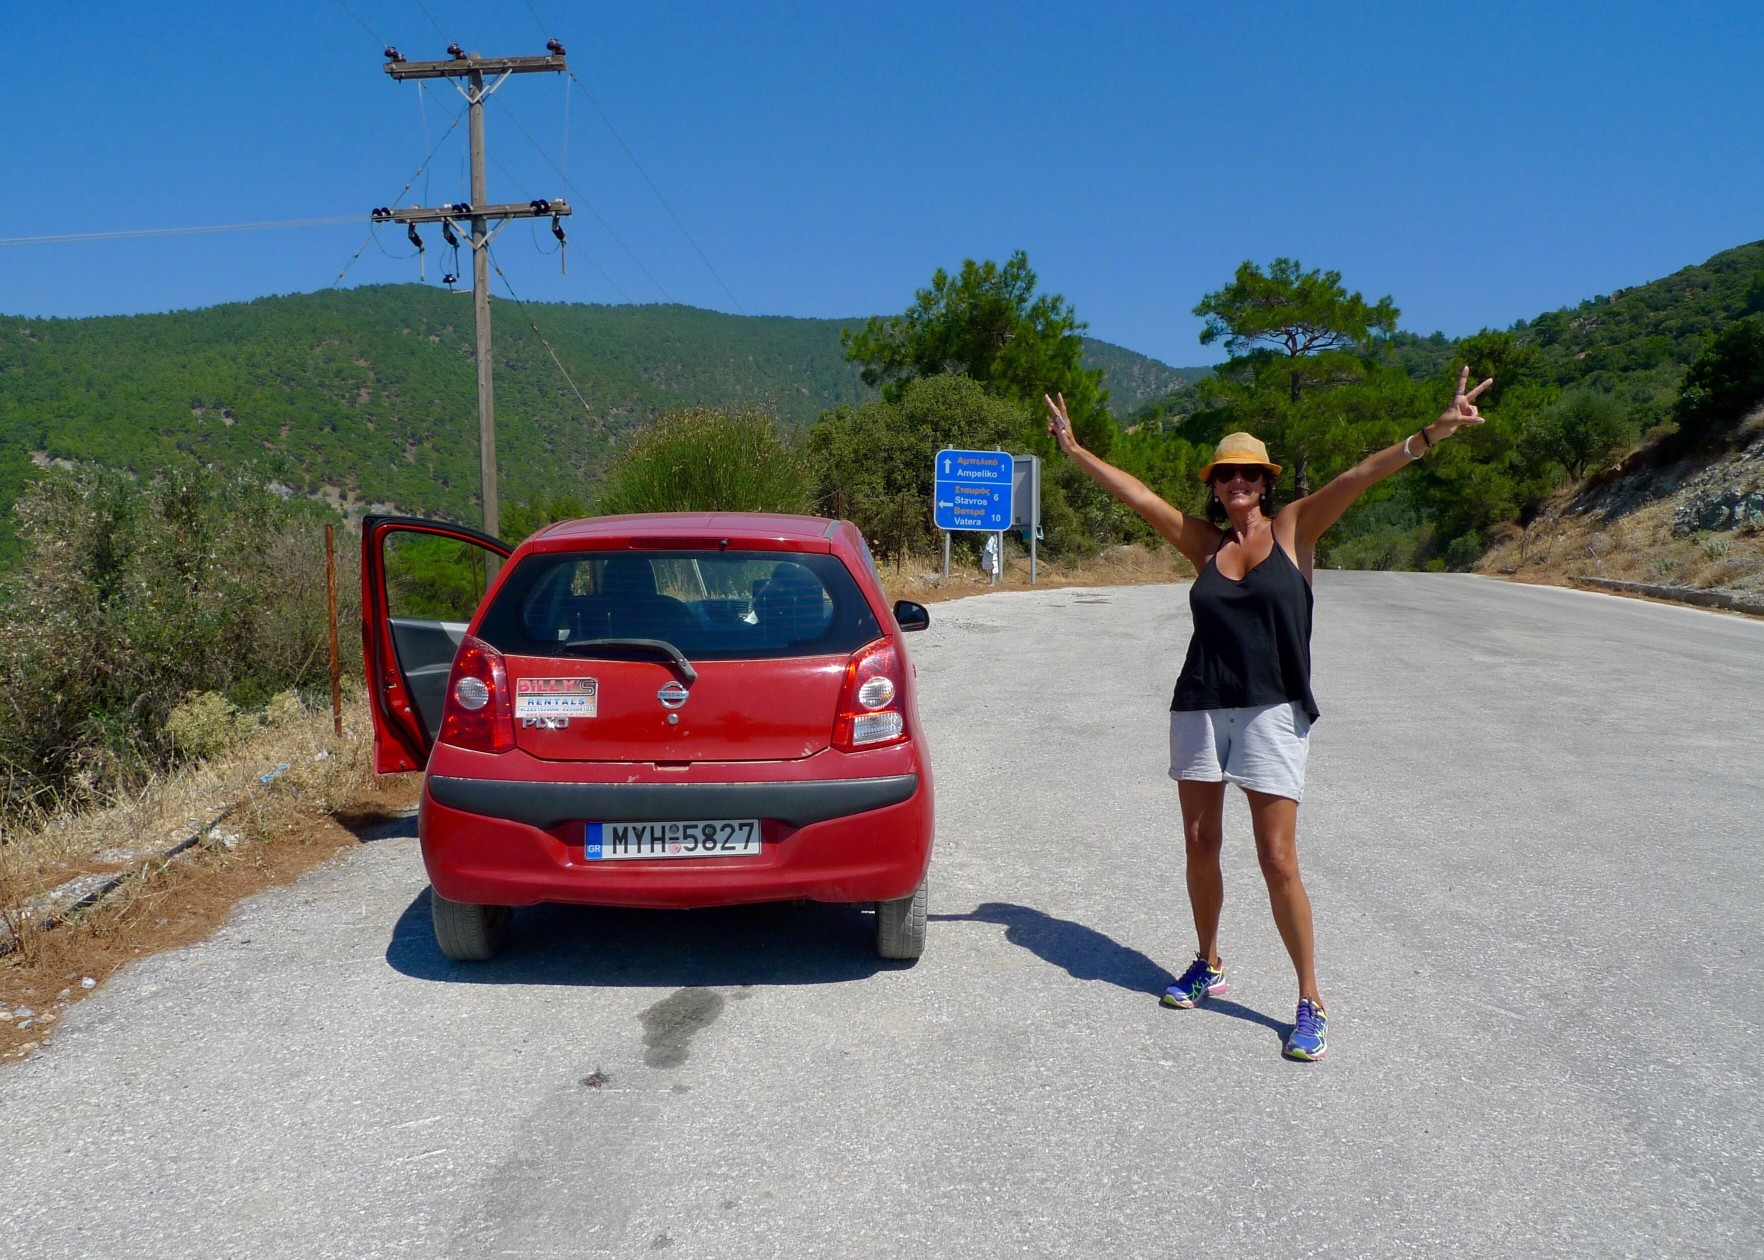 road-trip-in-a-little-red-car_t20_7mWPxv